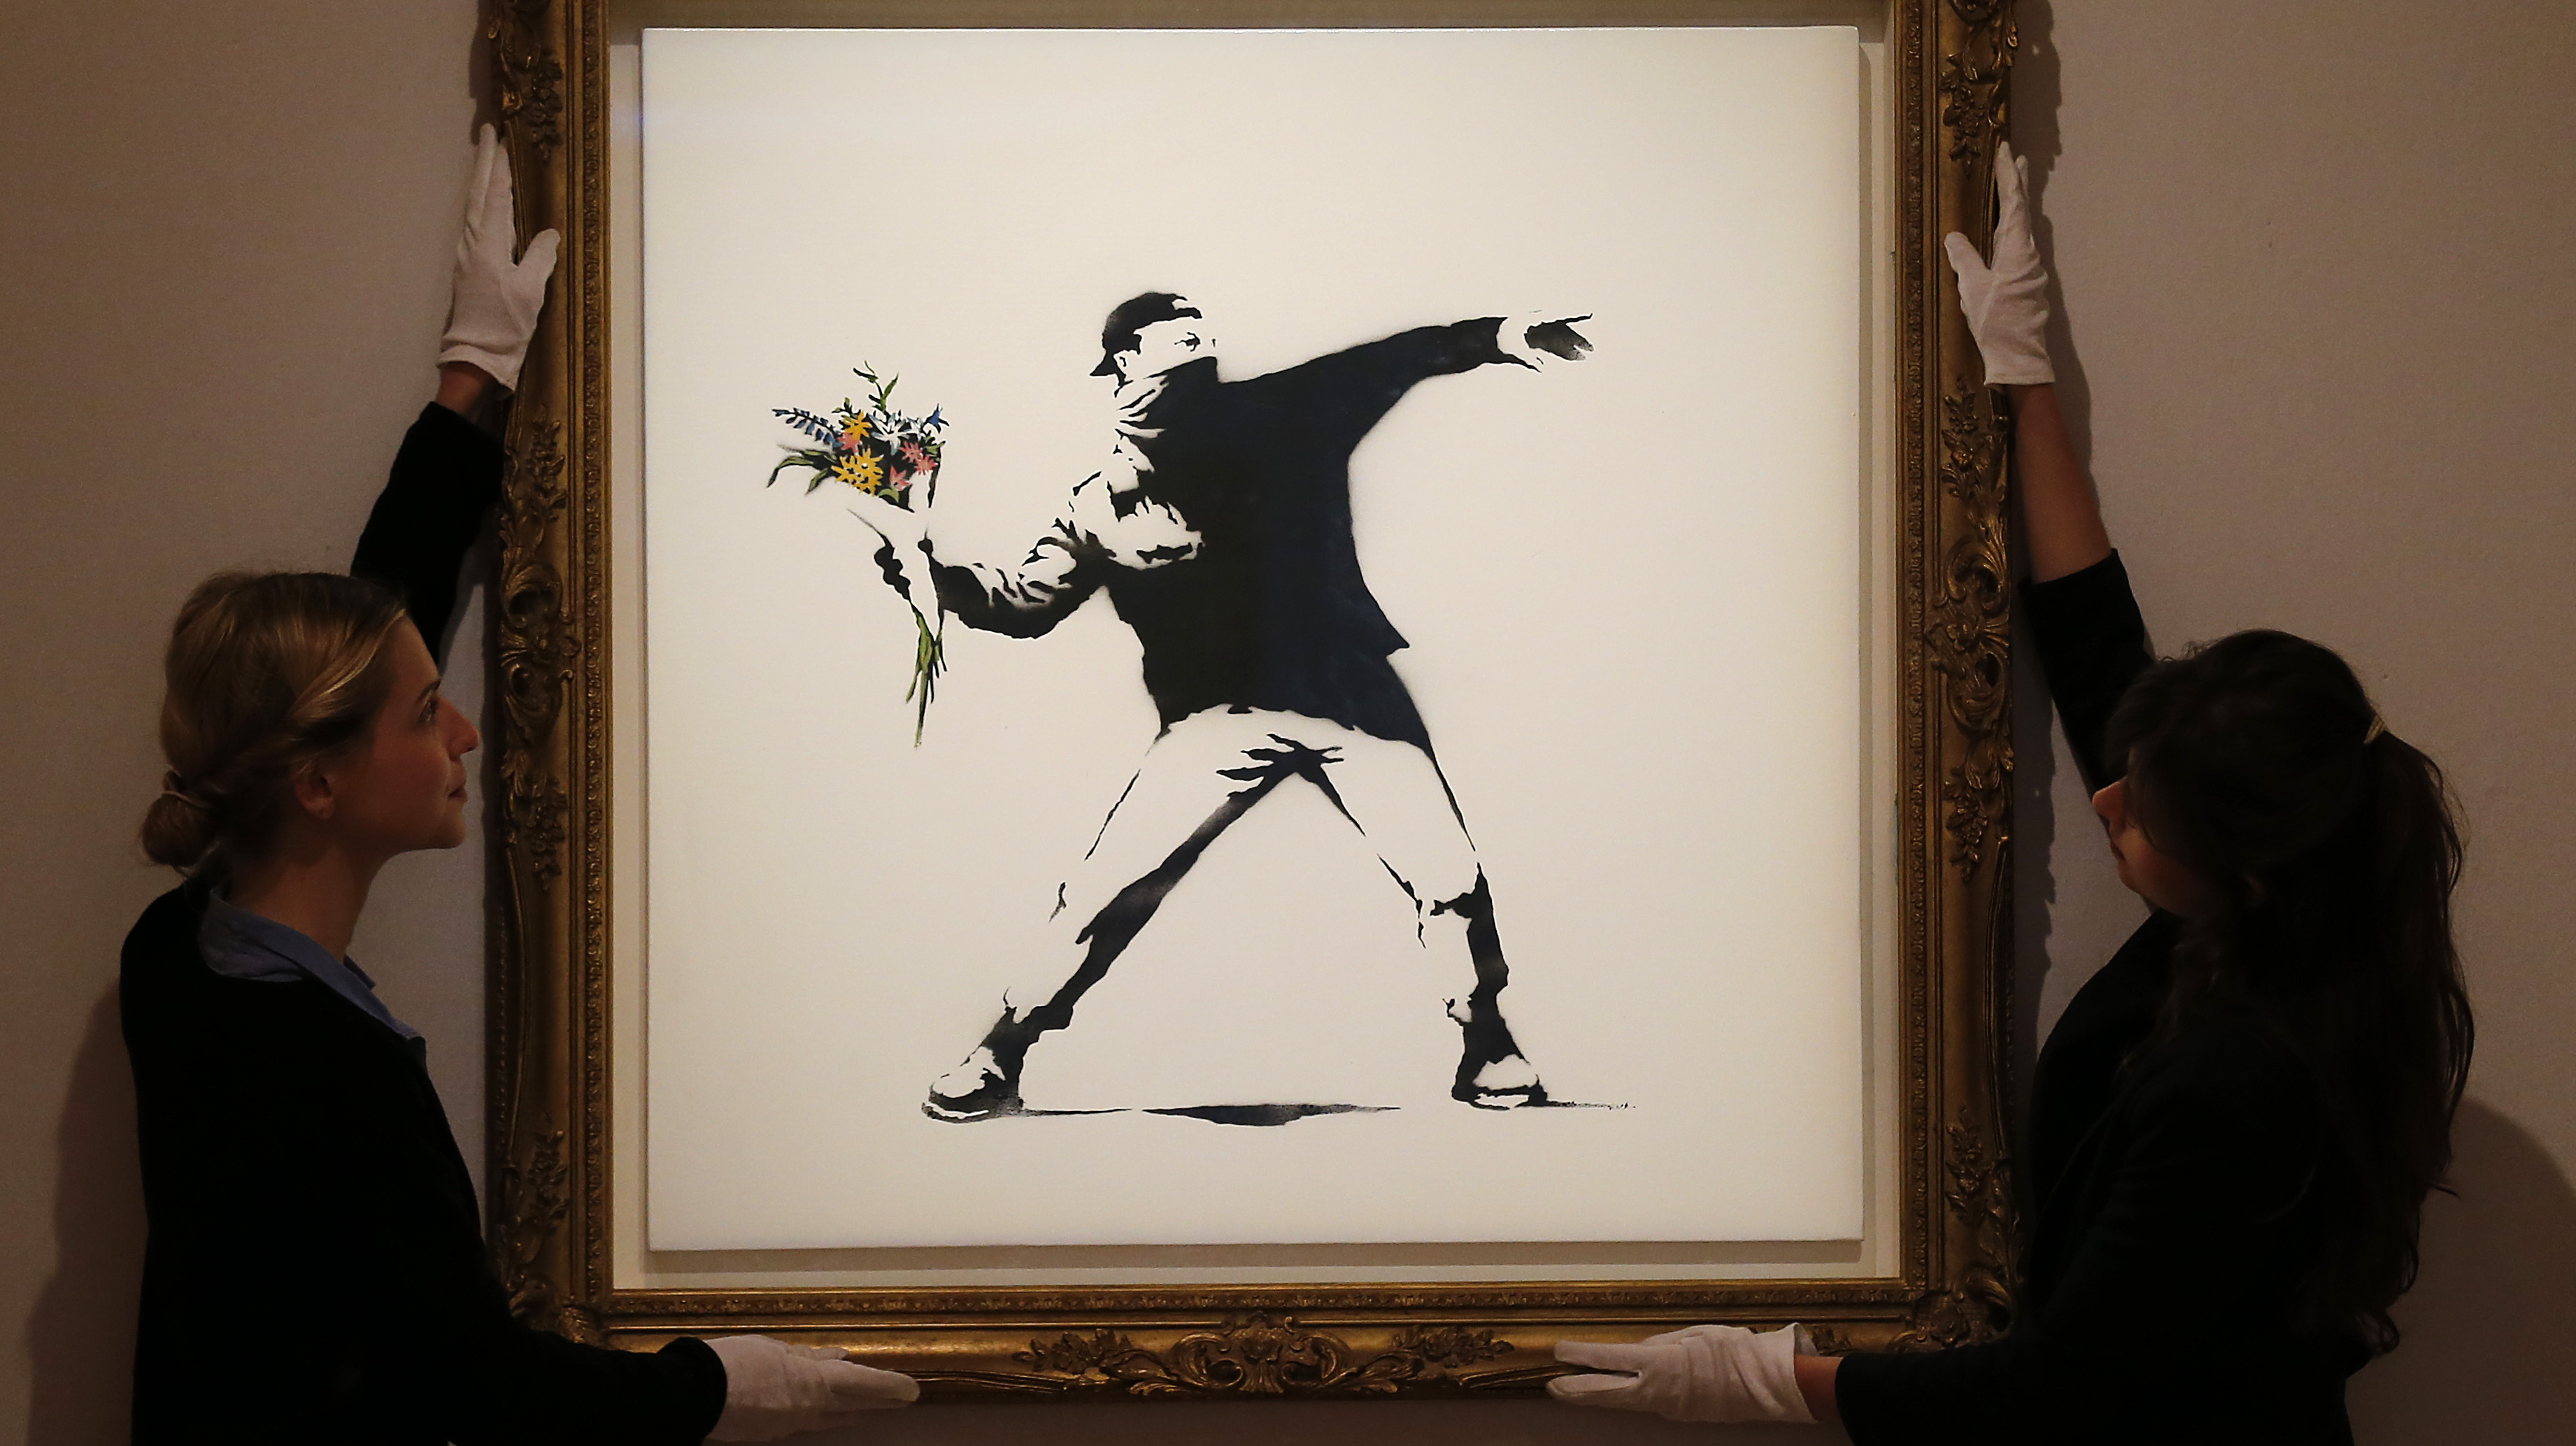 Collectible Art At Street Prices: Banksy Sells Pieces For $60